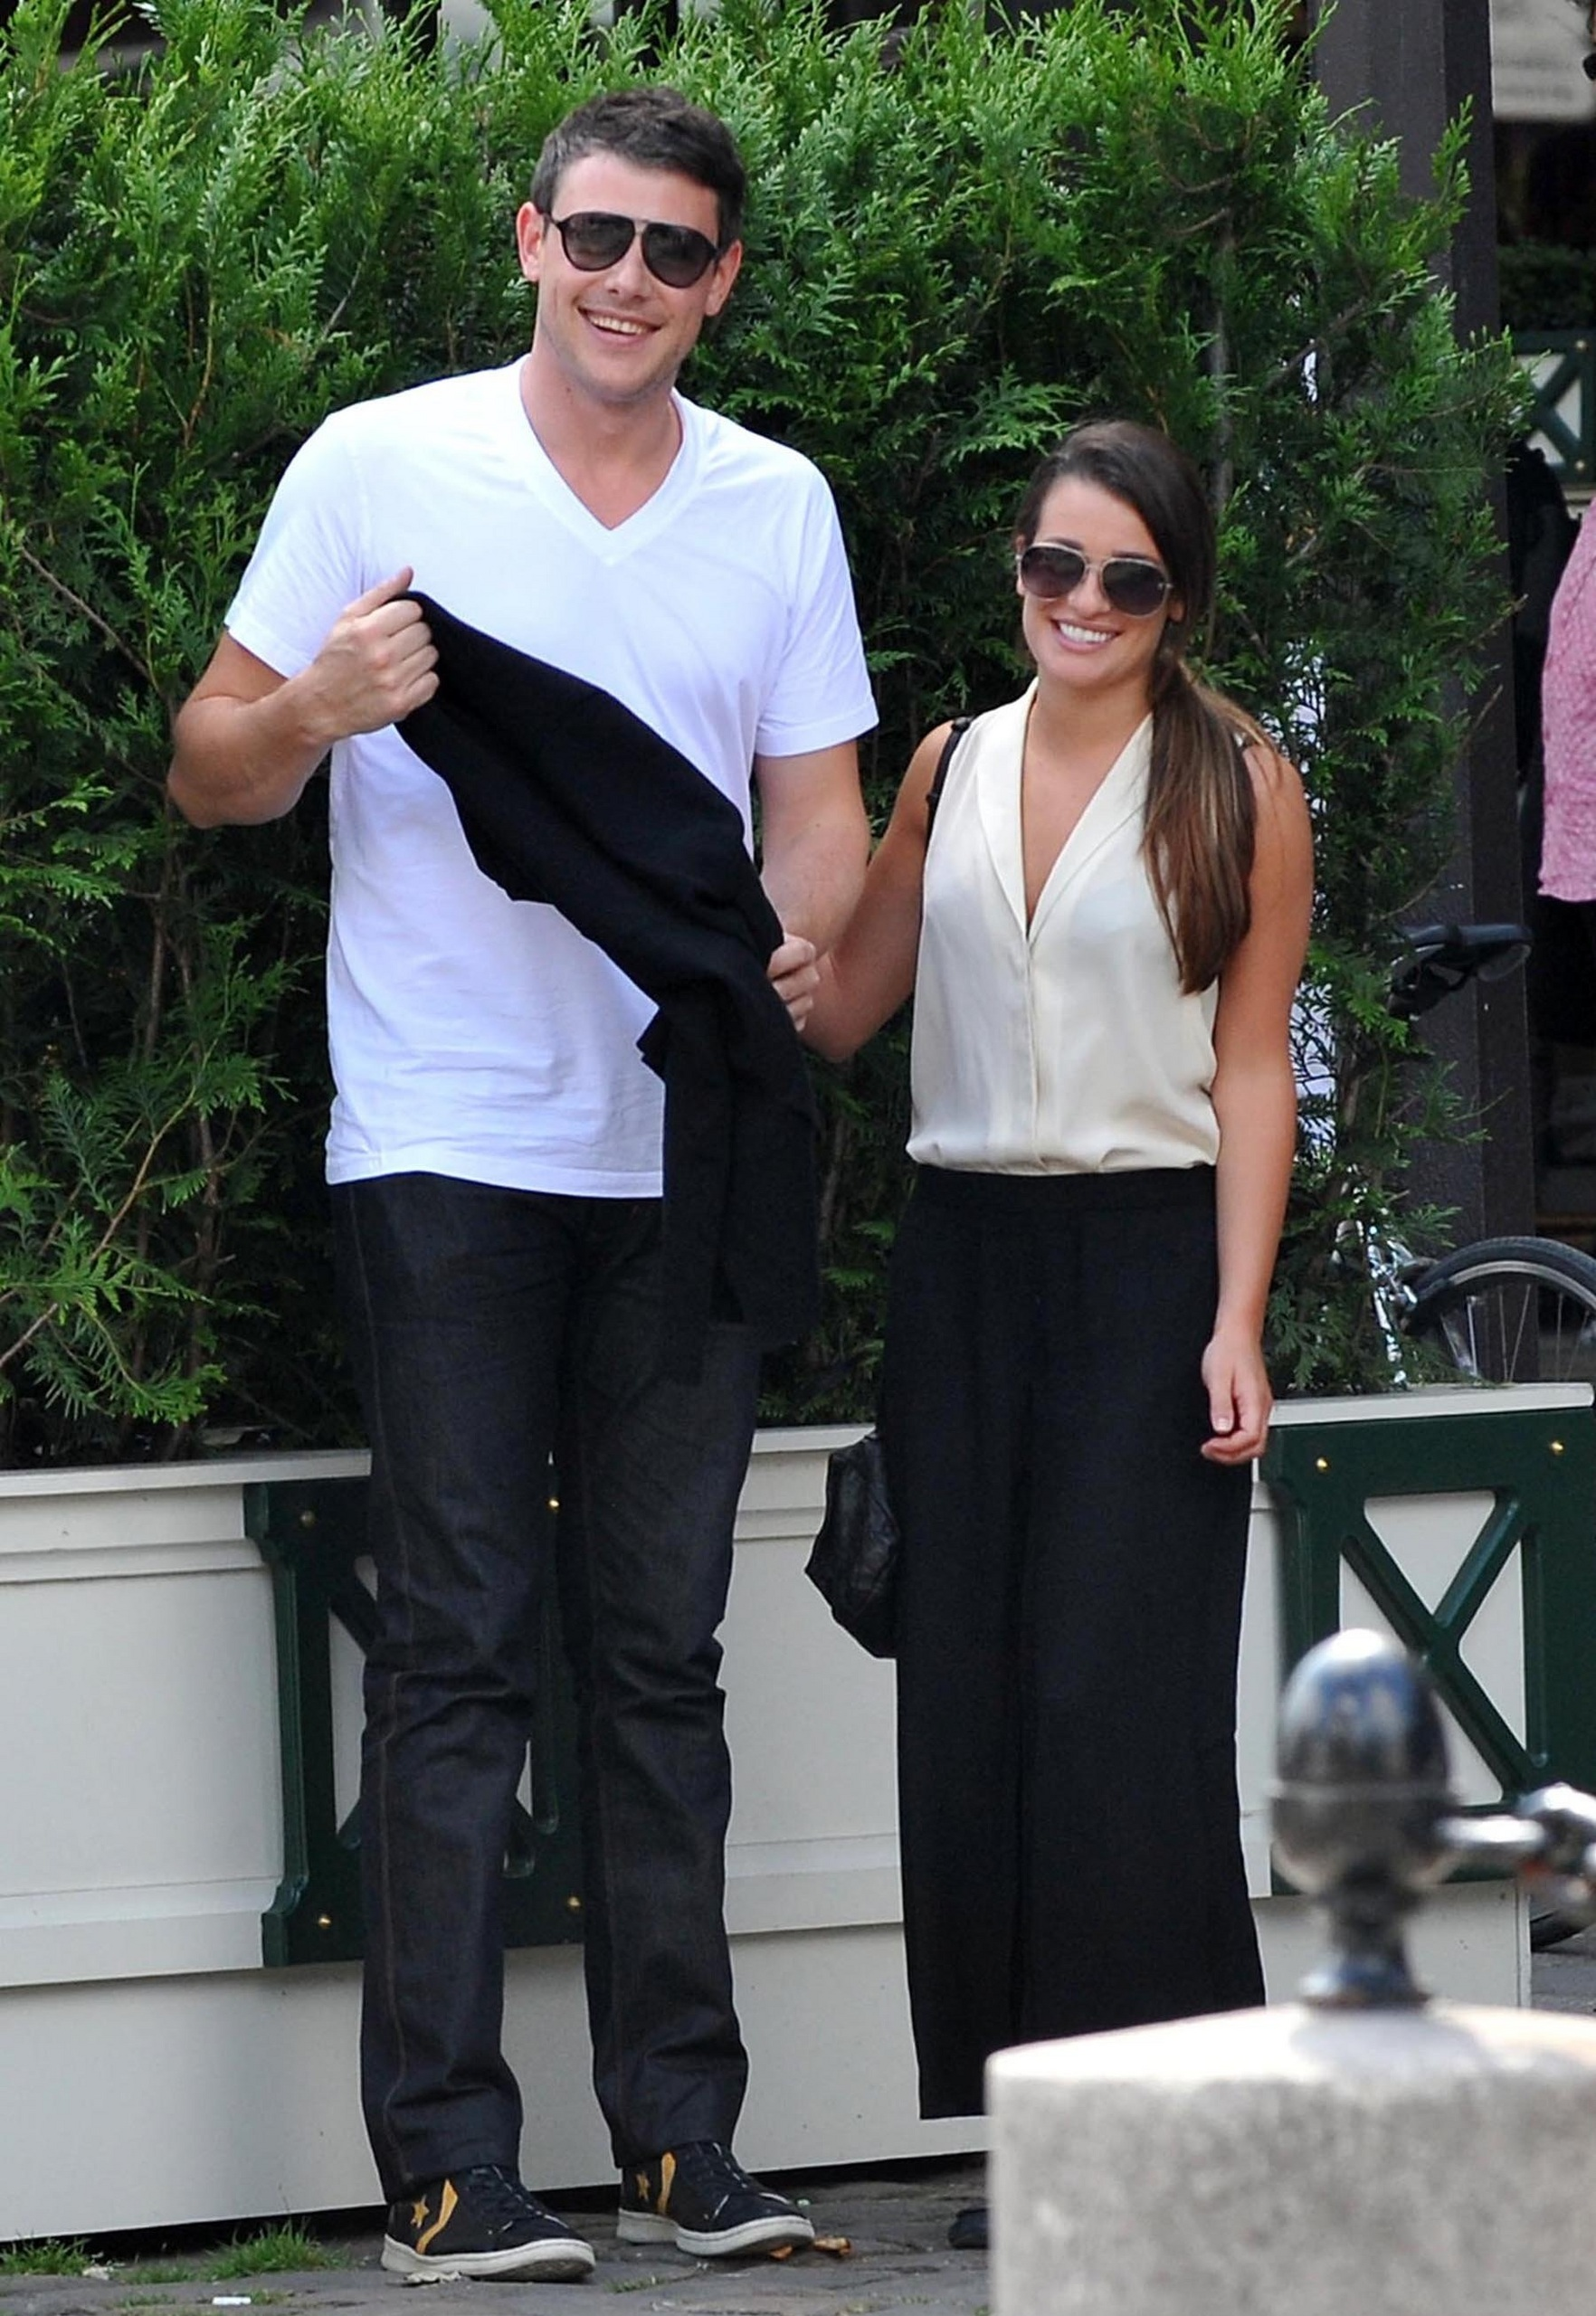 lea and cory dating 2012 Lea michele was living her dream as glee's resident drama queen, dating the quarterback on-screen and off then, cory monteith's tragic death shattered her world she opens up to lizzy goodman about love, mourning through music, and finding stren.